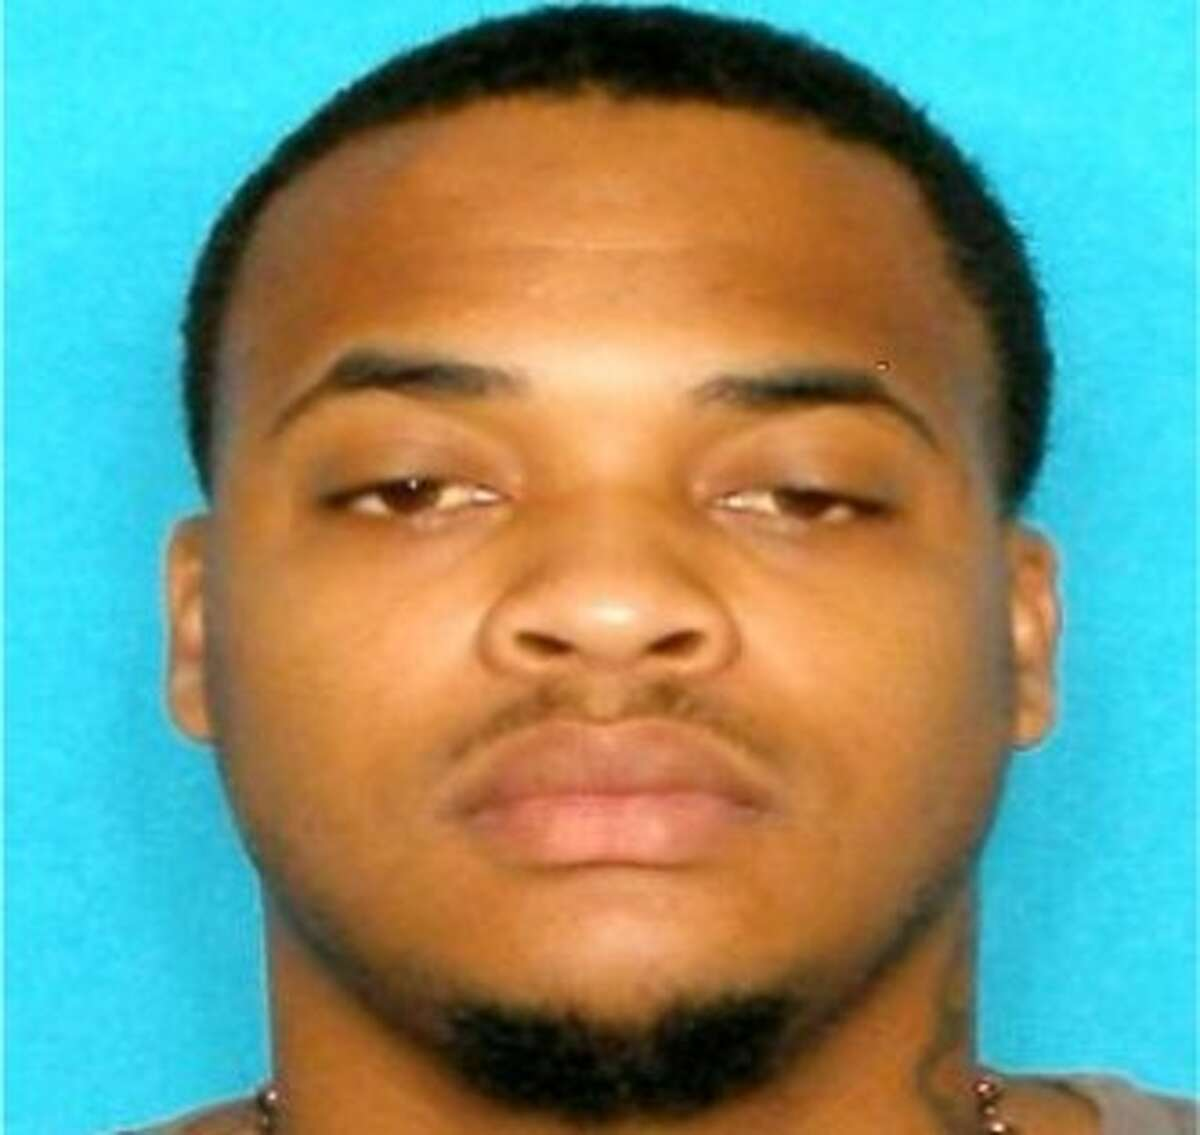 Christopher Dante Wilson, 31 Warrant:Engaging in organized criminal act Last known location:Rockford, Houston Who to contact with info:Multi-County Crime Stoppers,1-800-392-STOP